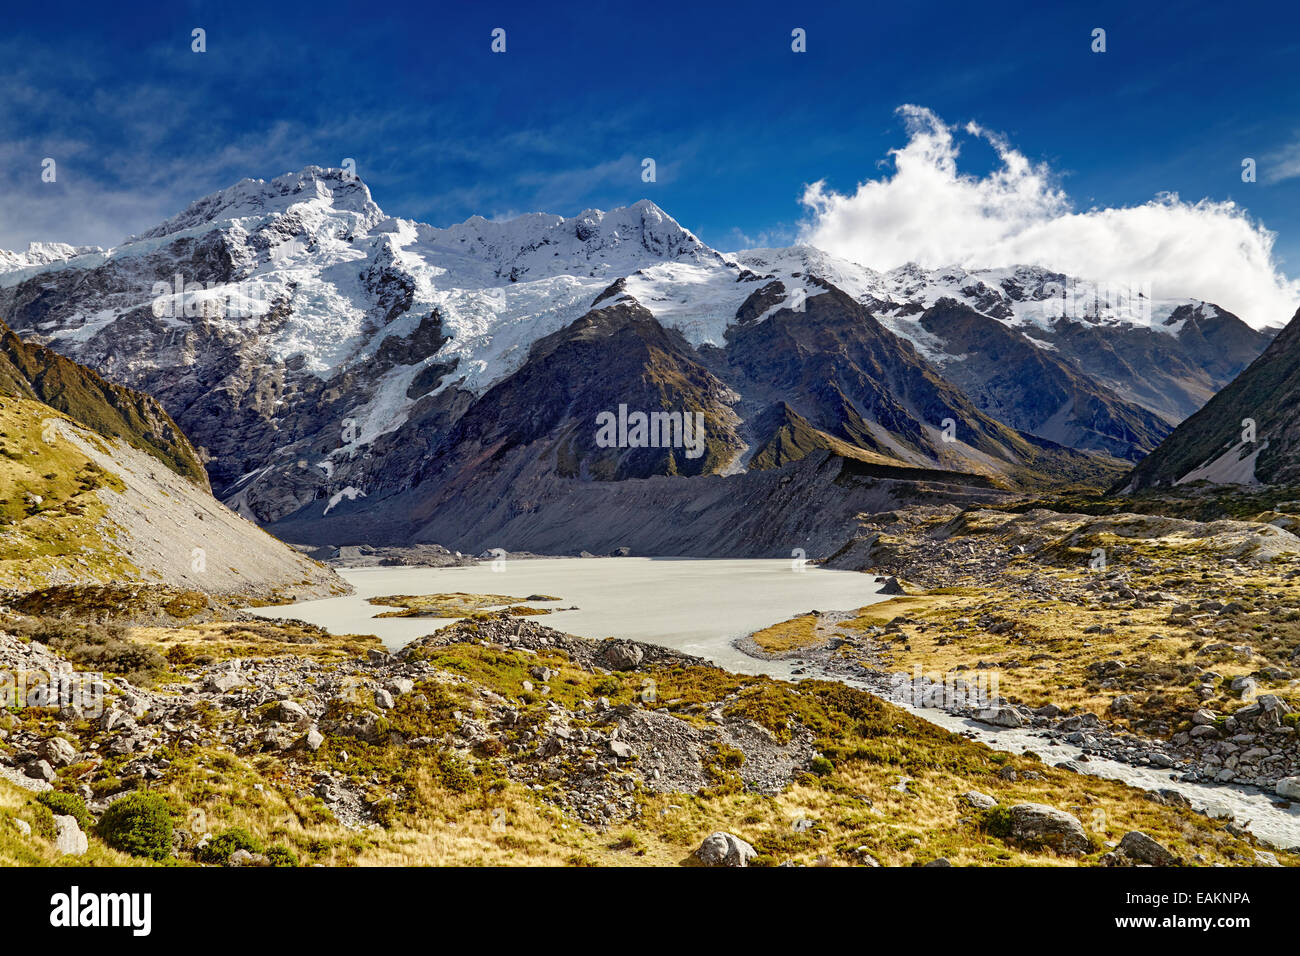 Mount Sefton and Hooker valley, Southern Alps, New Zealand - Stock Image